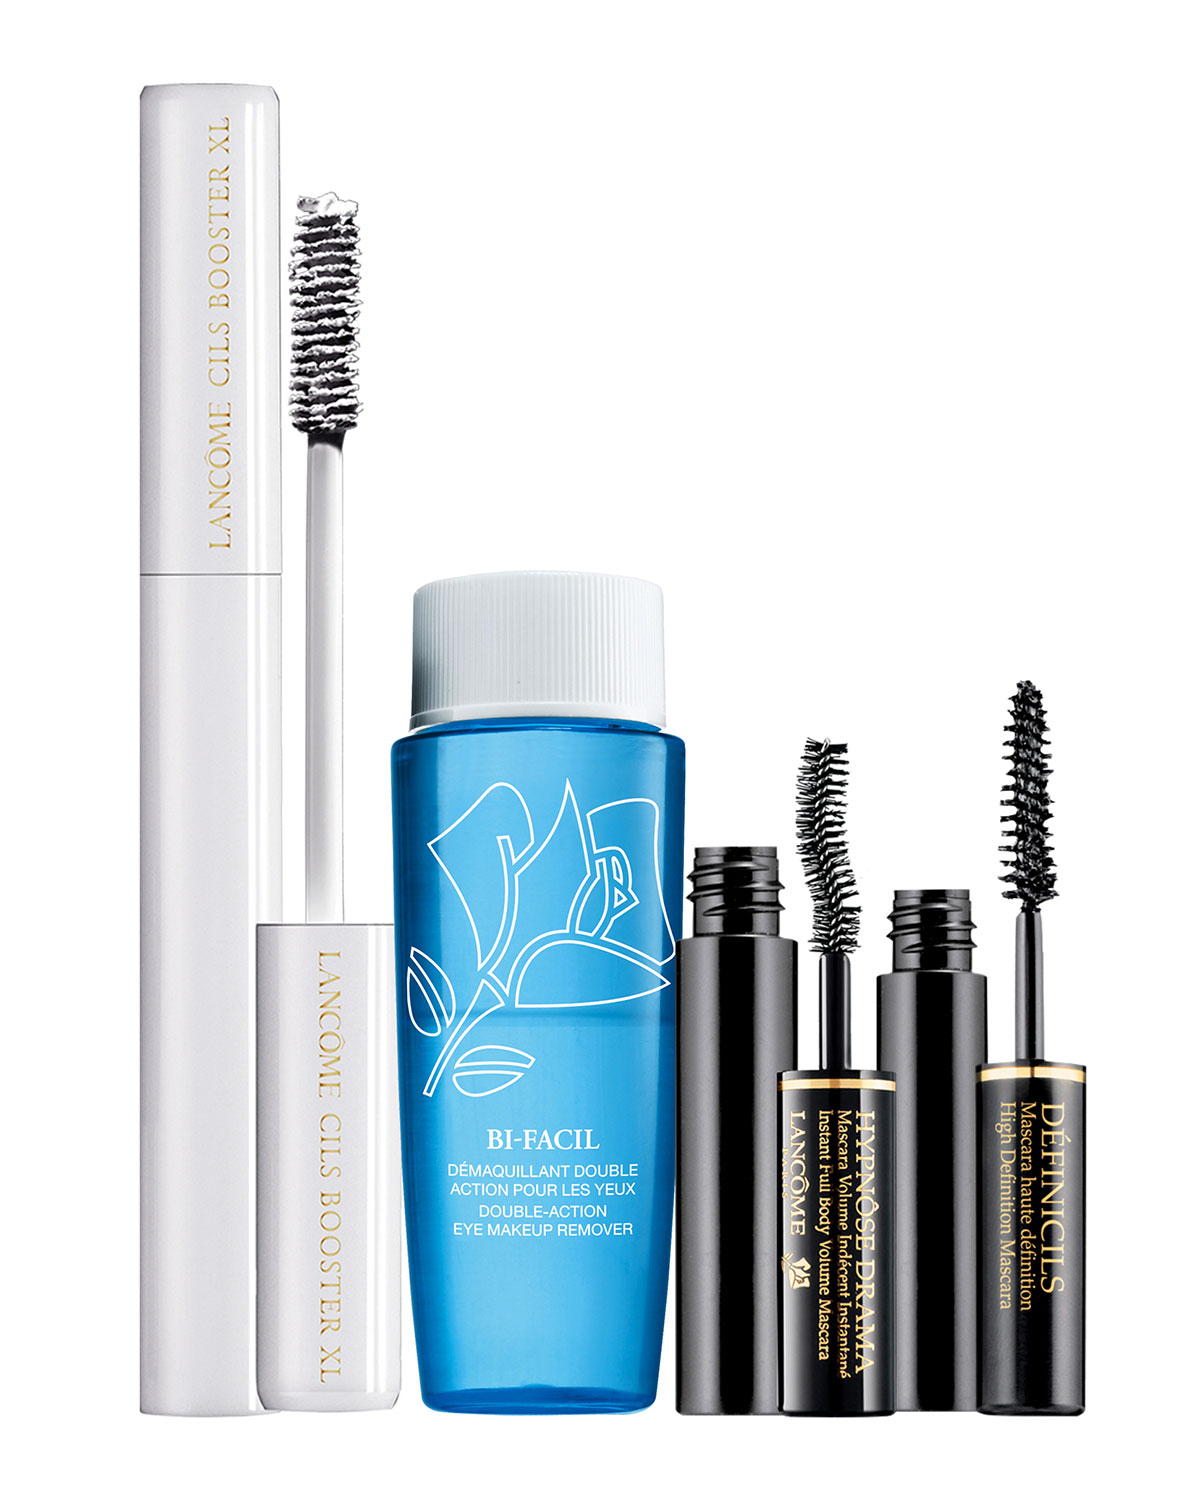 Boost Your Lashes Value Set ($64.50 Value)